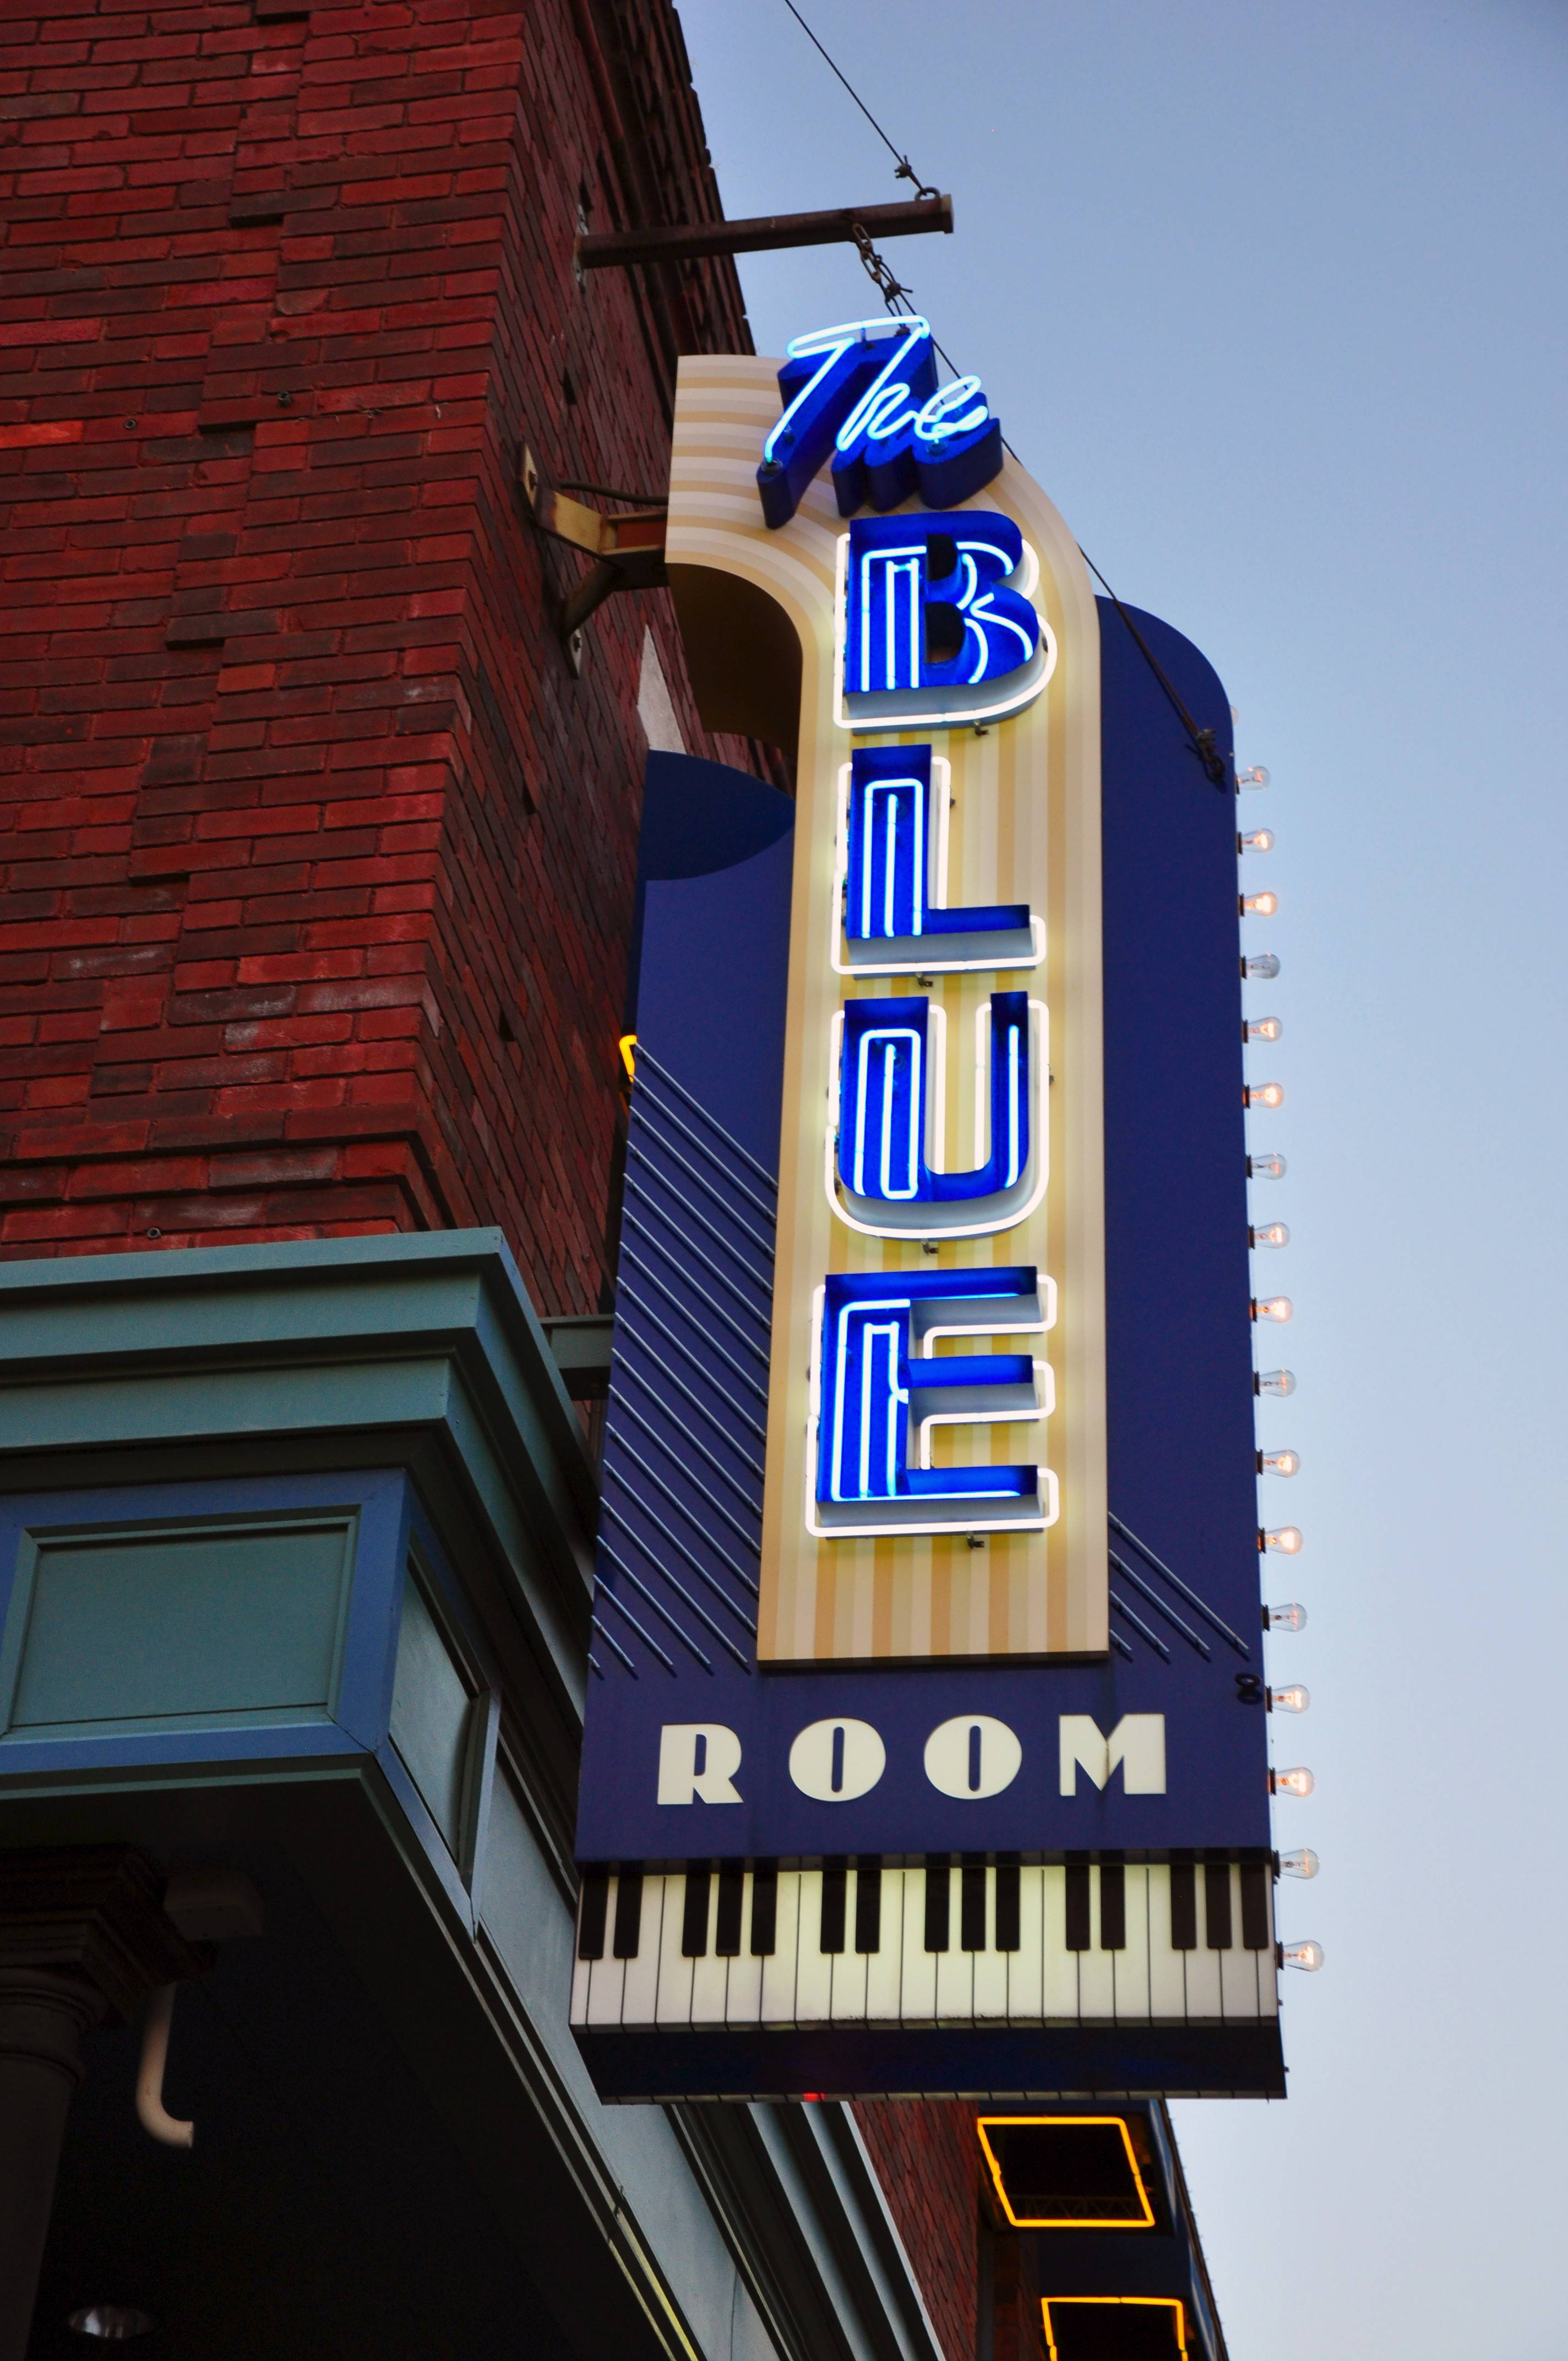 One of the most prominent jazz clubs in Kansas City, The Blue Room, is part of the American Jazz Museum in the 18th & Vine Historic Jazz District.